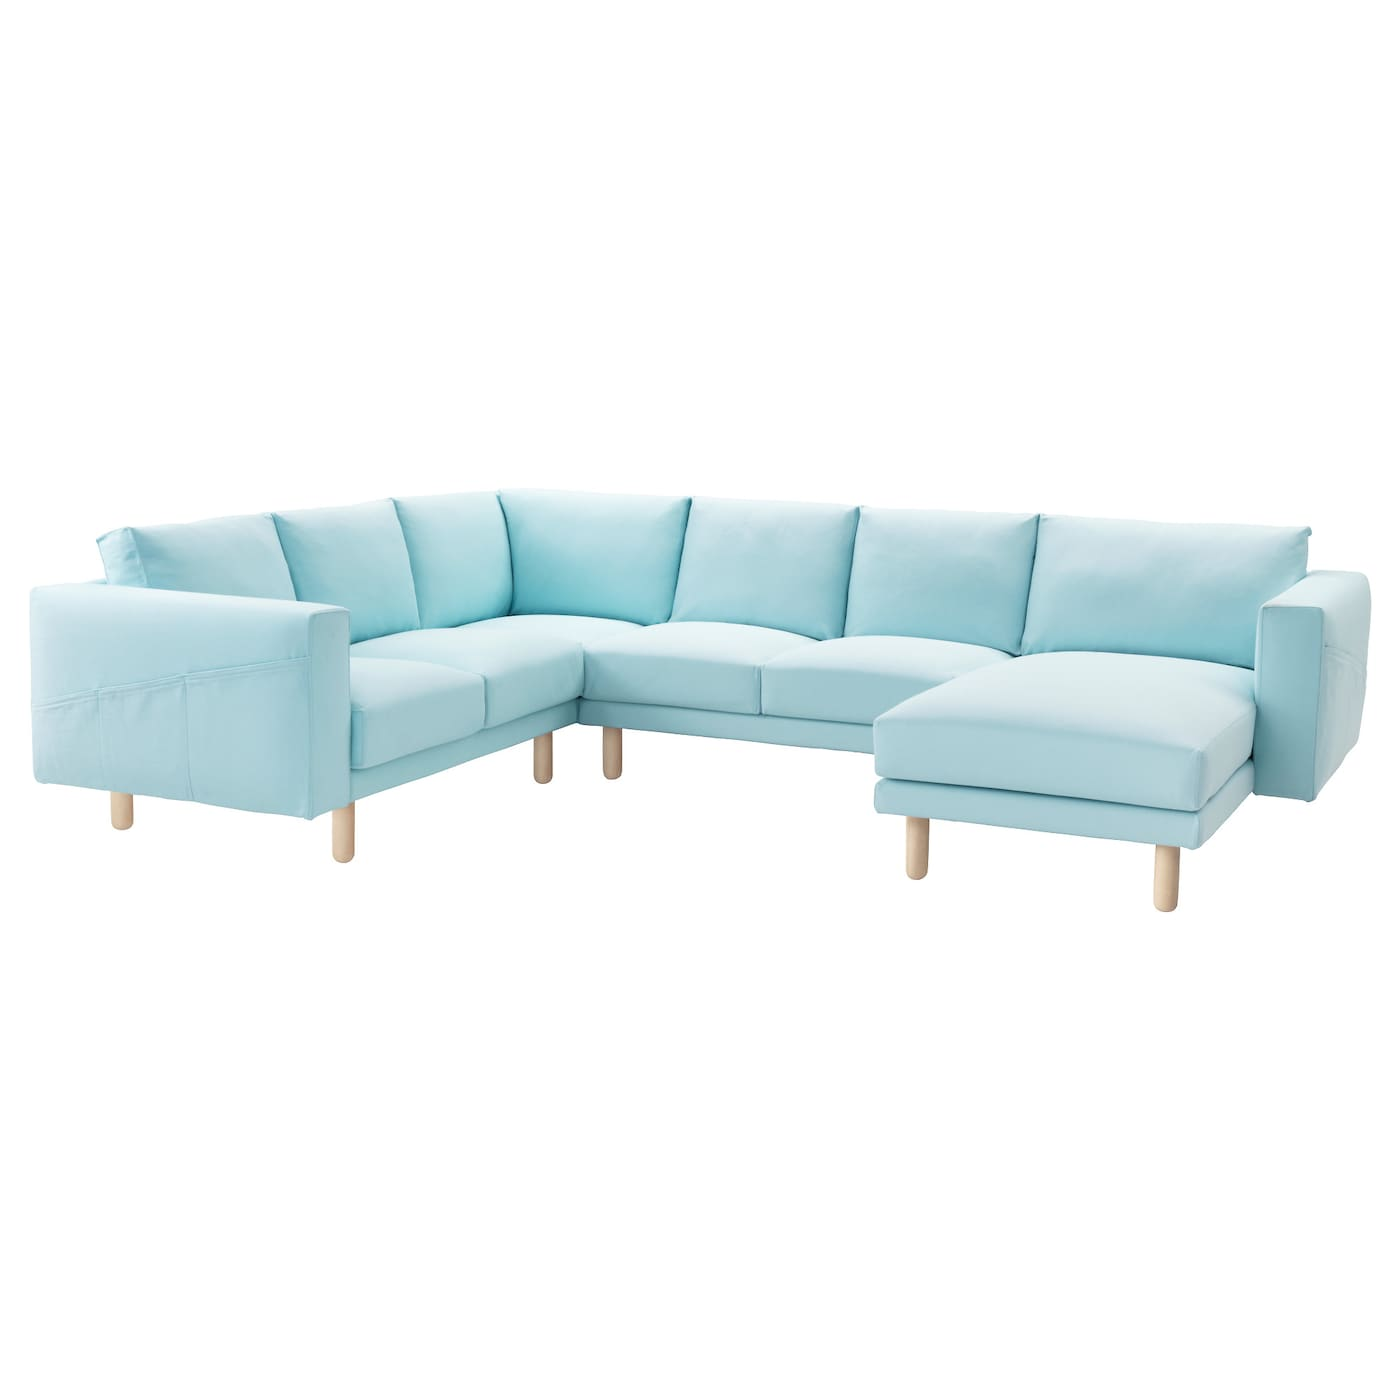 Norsborg corner sofa 2 2 with chaise longue gr sbo light for Sofas rinconeras ikea